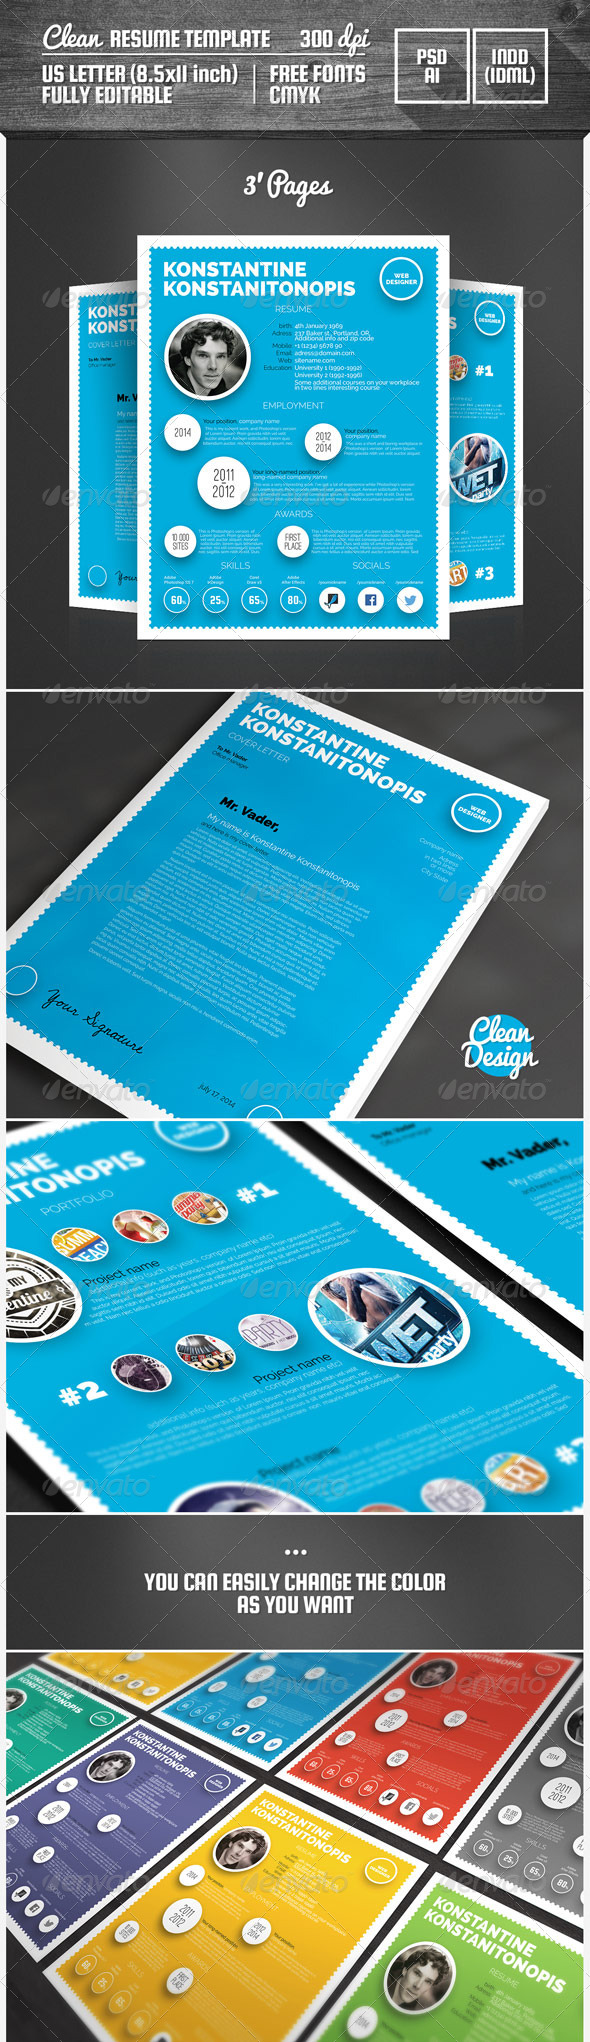 GraphicRiver Clean Resume Template 6791912